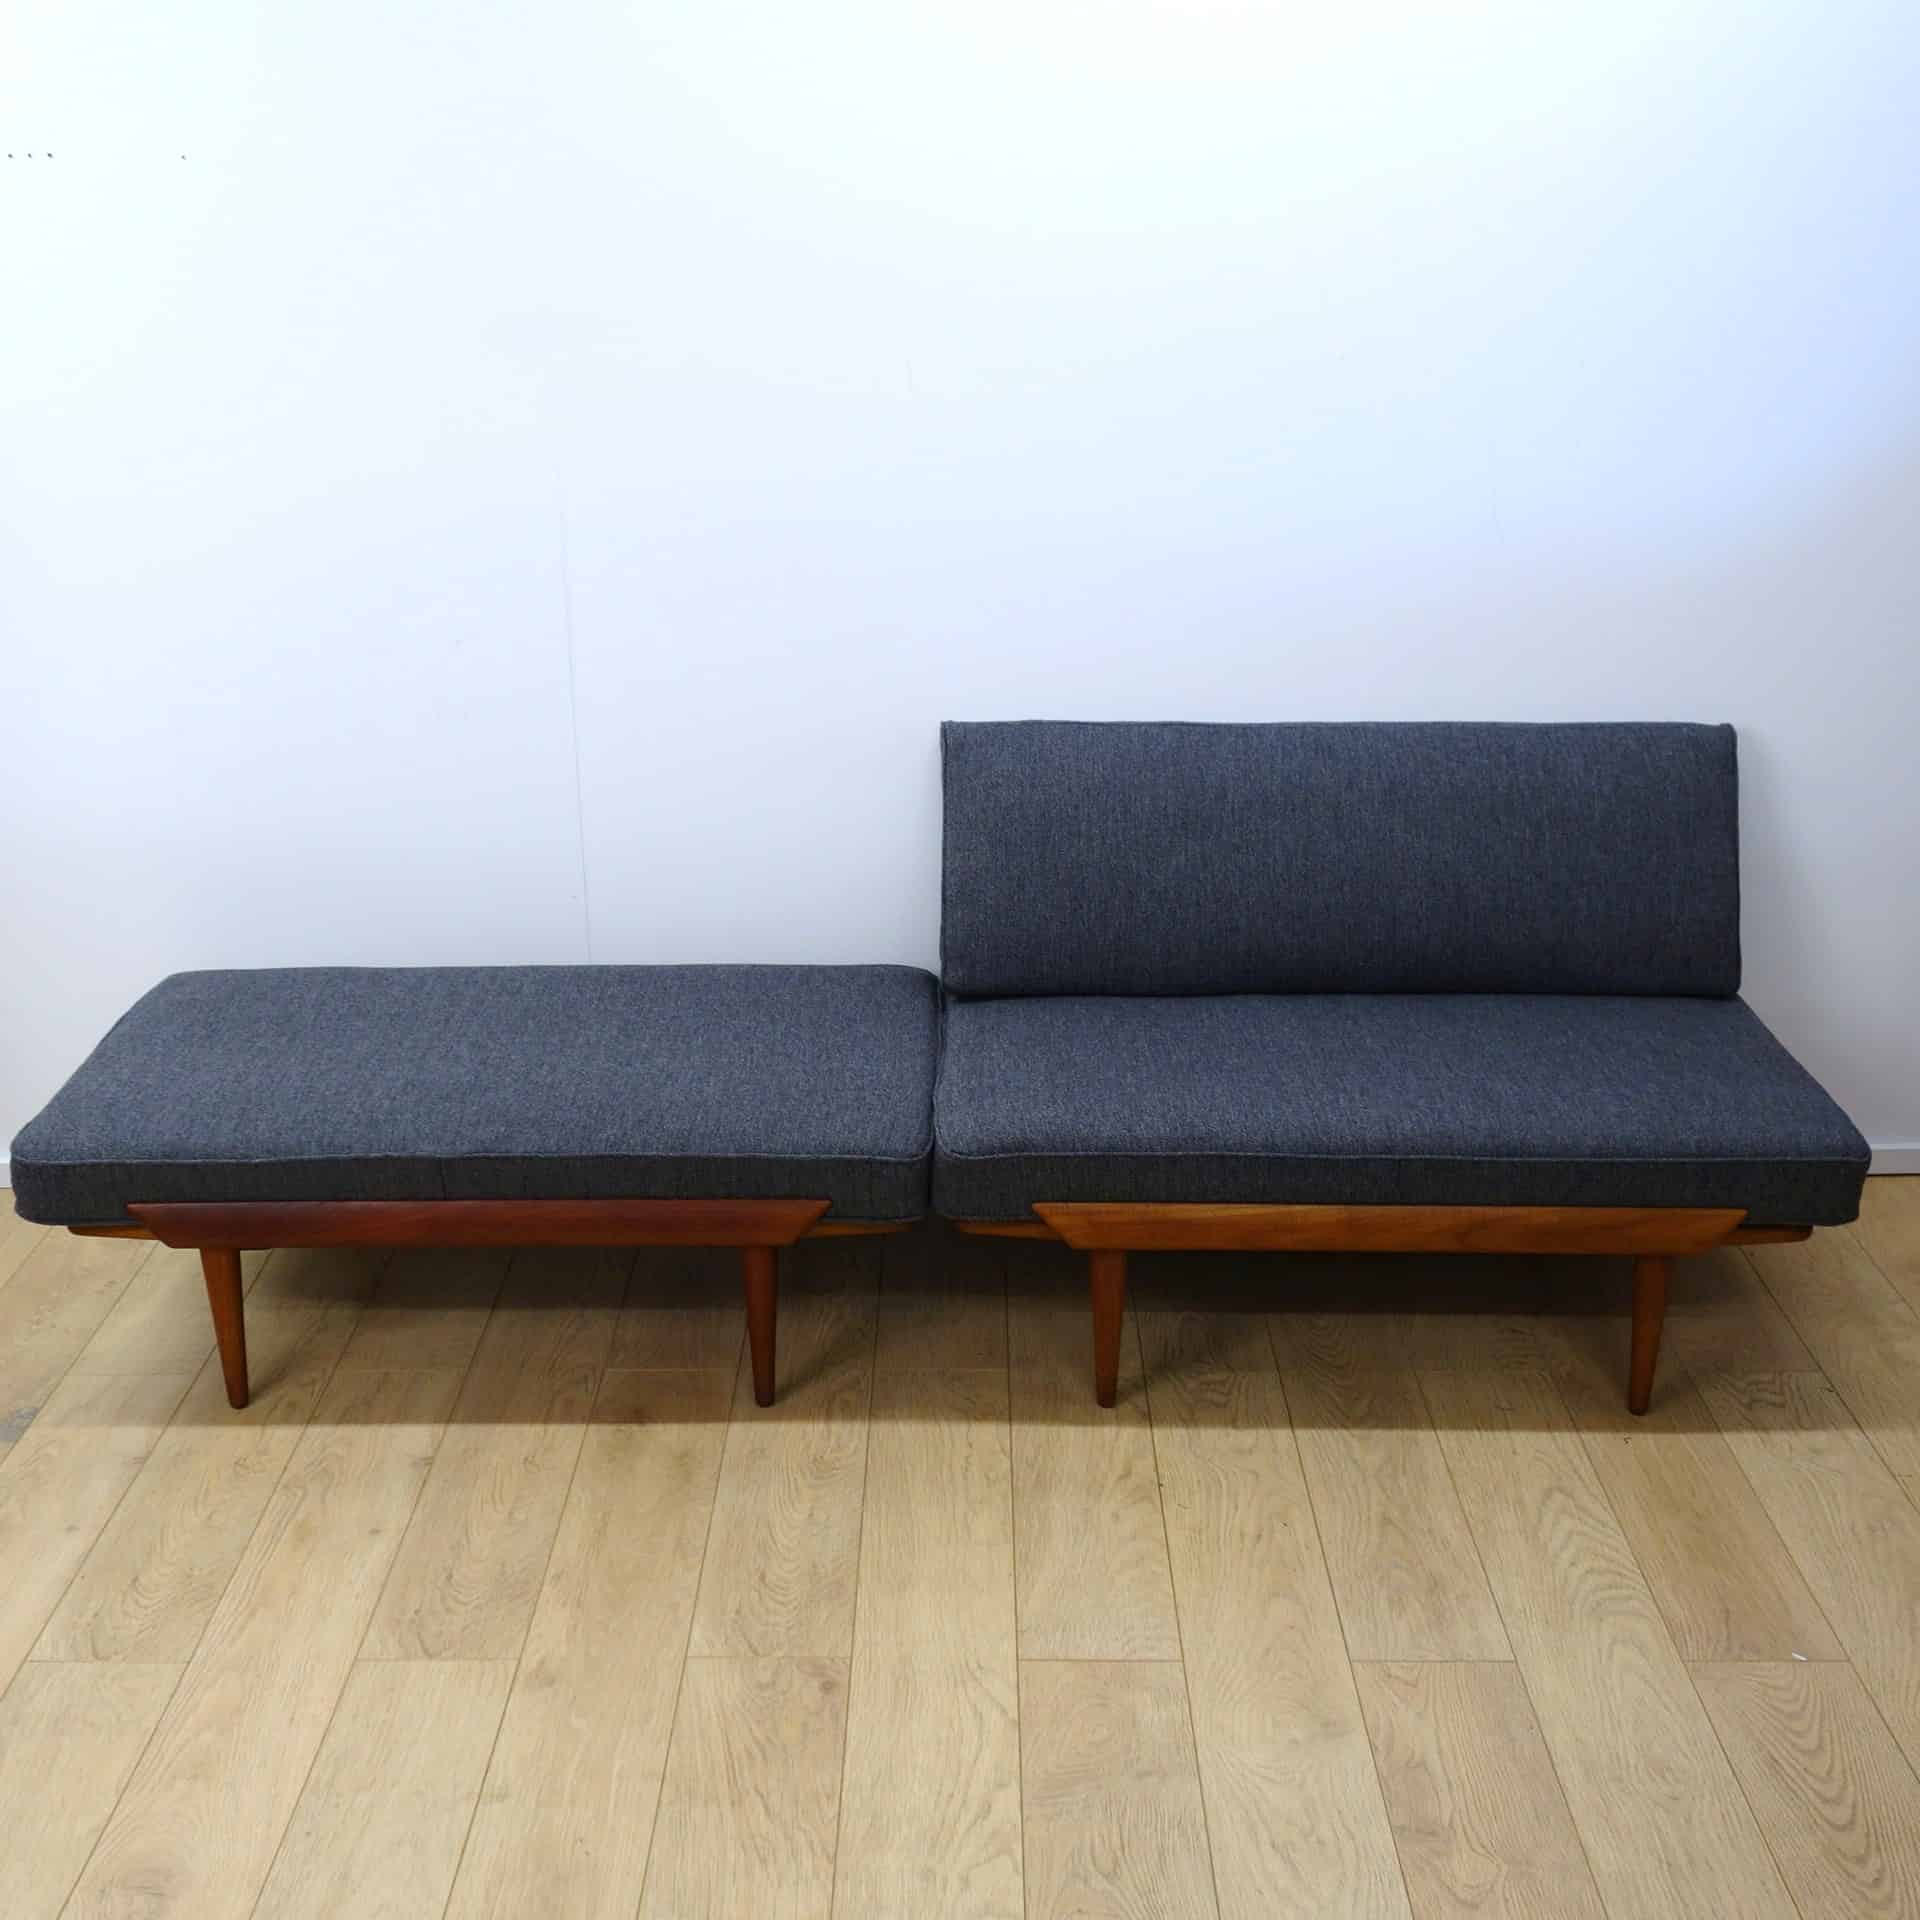 Pair Of Danish Sofa Day Beds By Peter Hvidt Mark Parrish